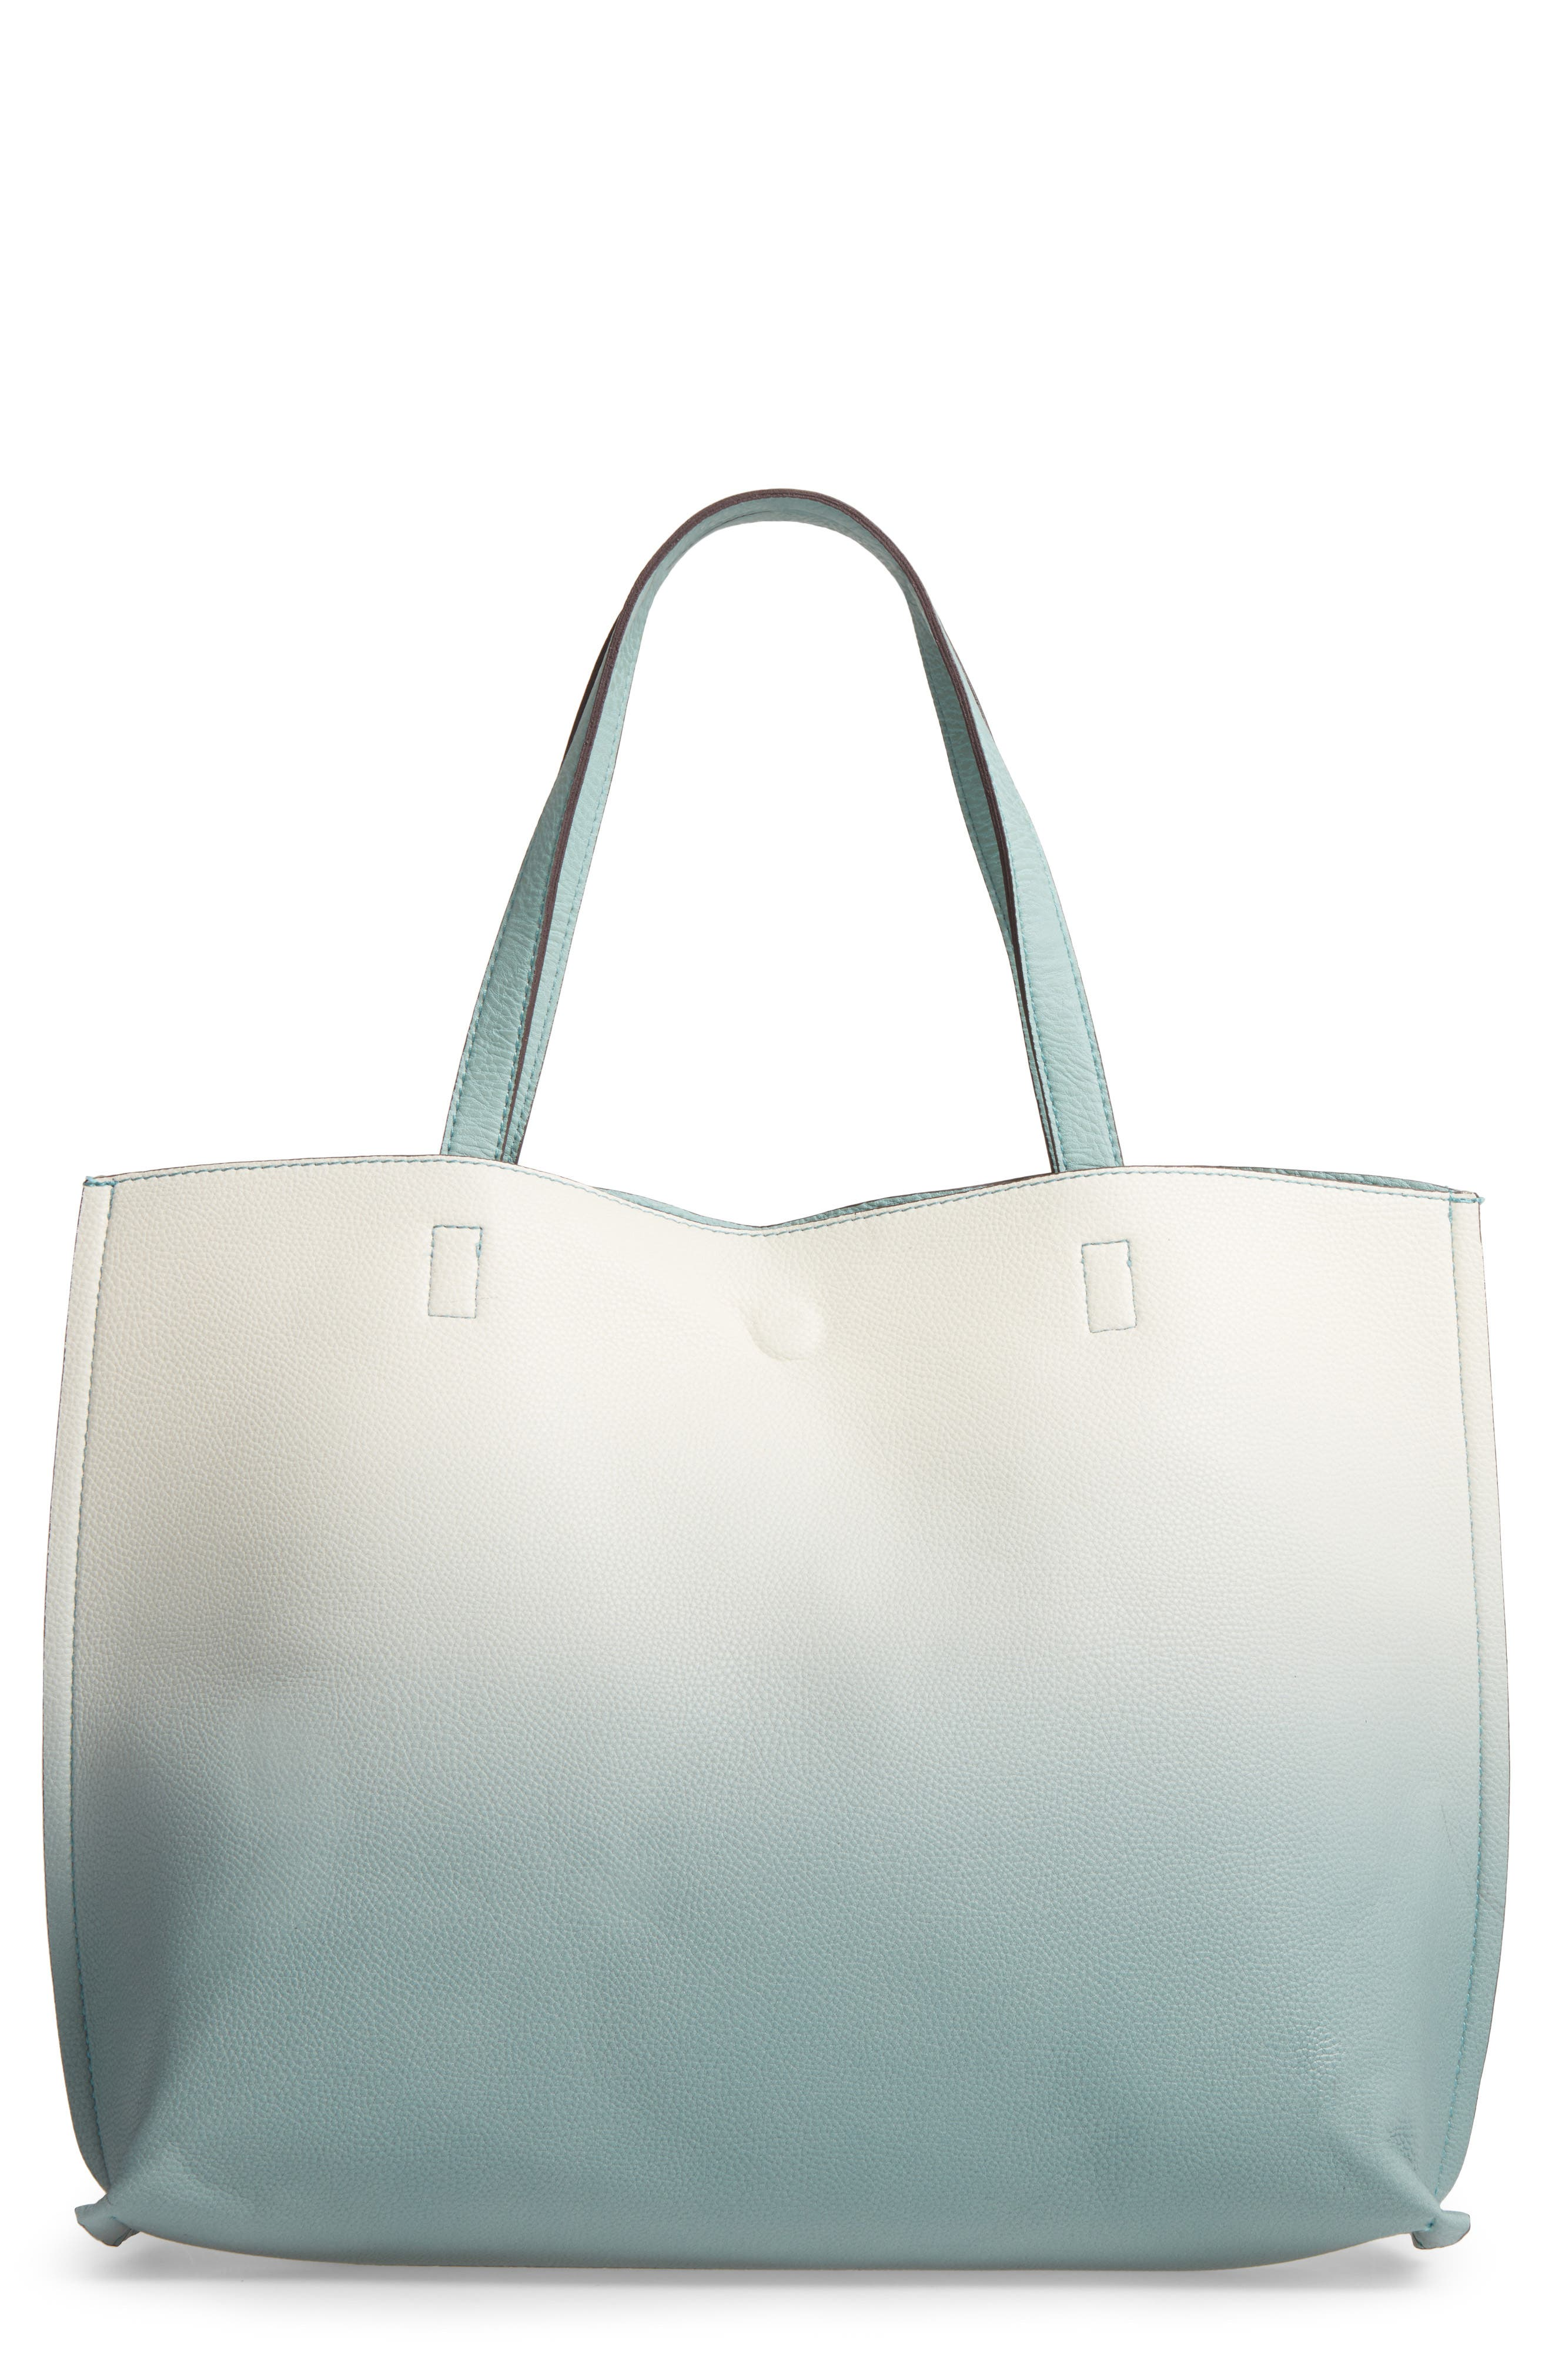 Alternate Image 1 Selected - Street Level Reversible Faux Leather Tote